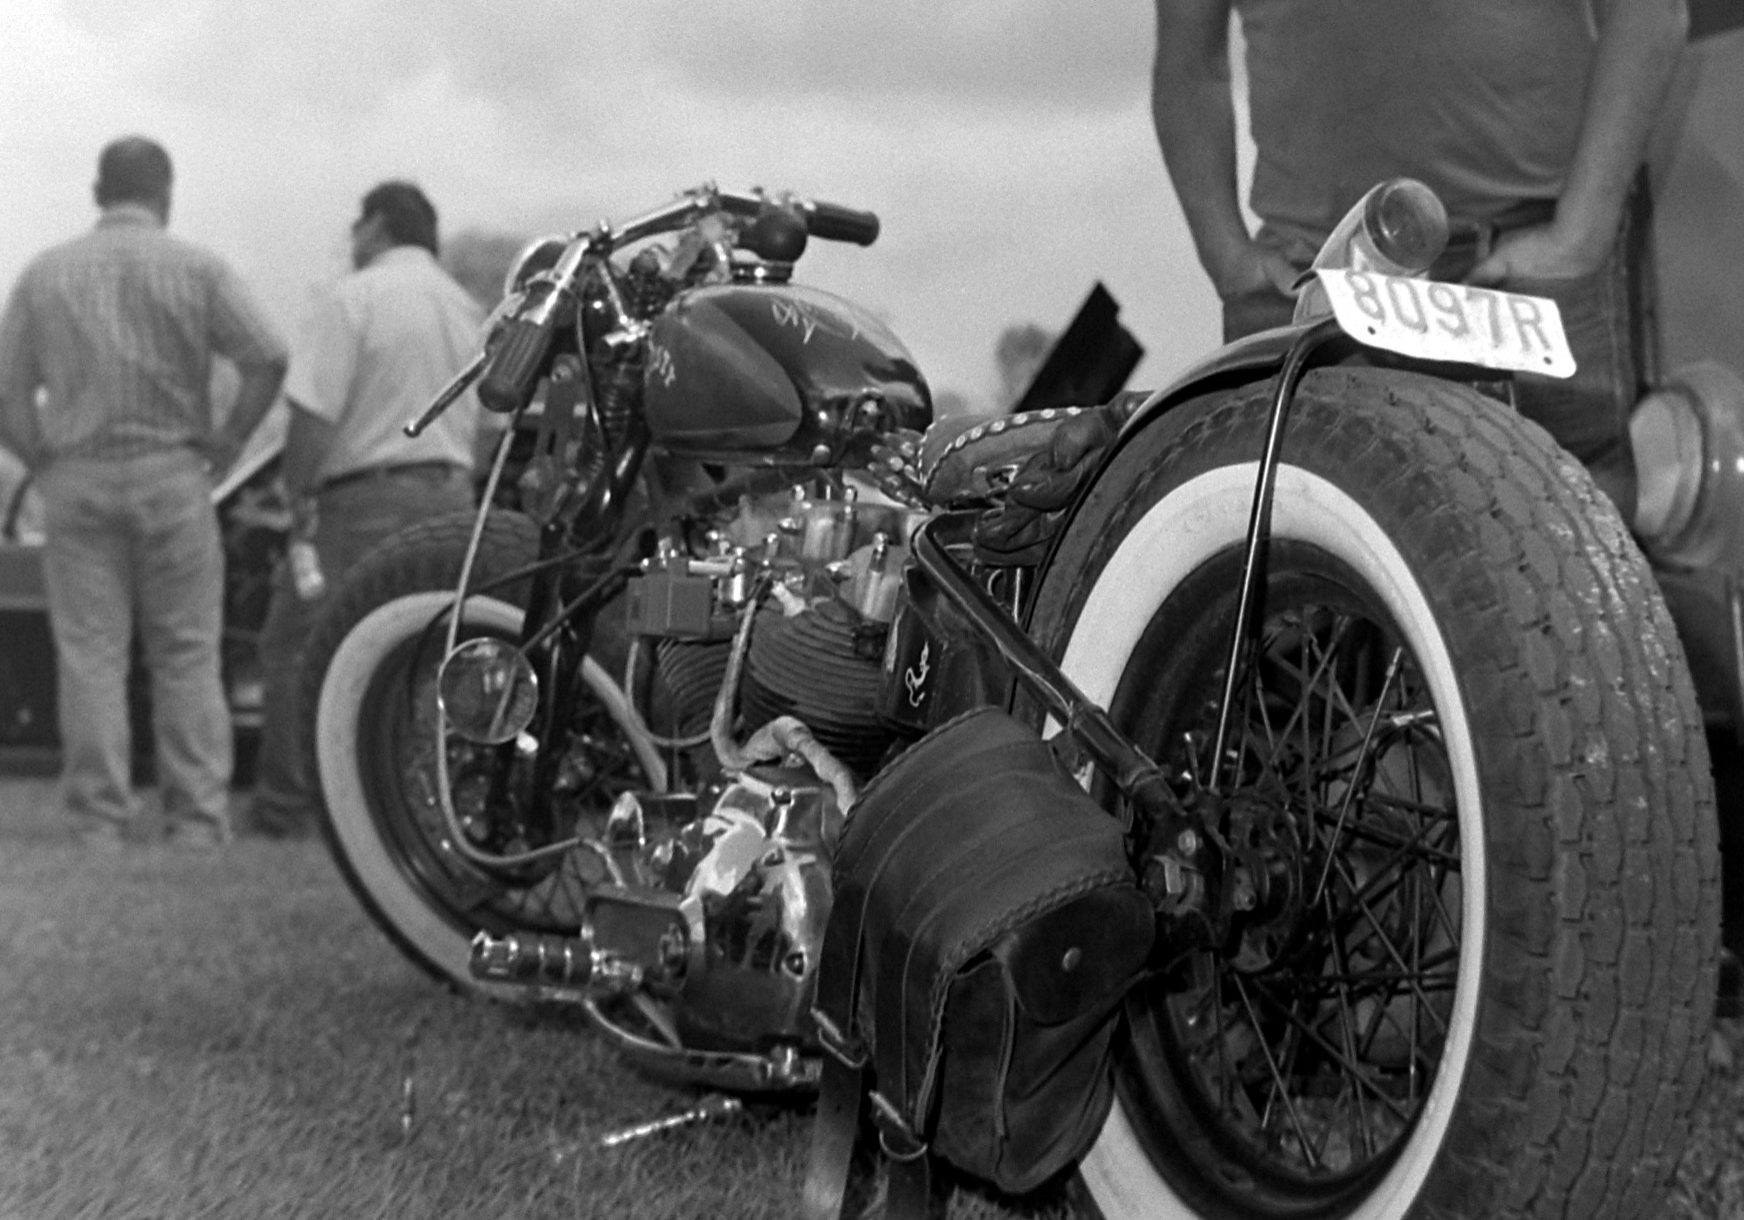 close up image of an old motorcycle propped up in grass, with a man with his hands in his pockets standing behind it, and two men far off in the left hand corner of the frame looking away.